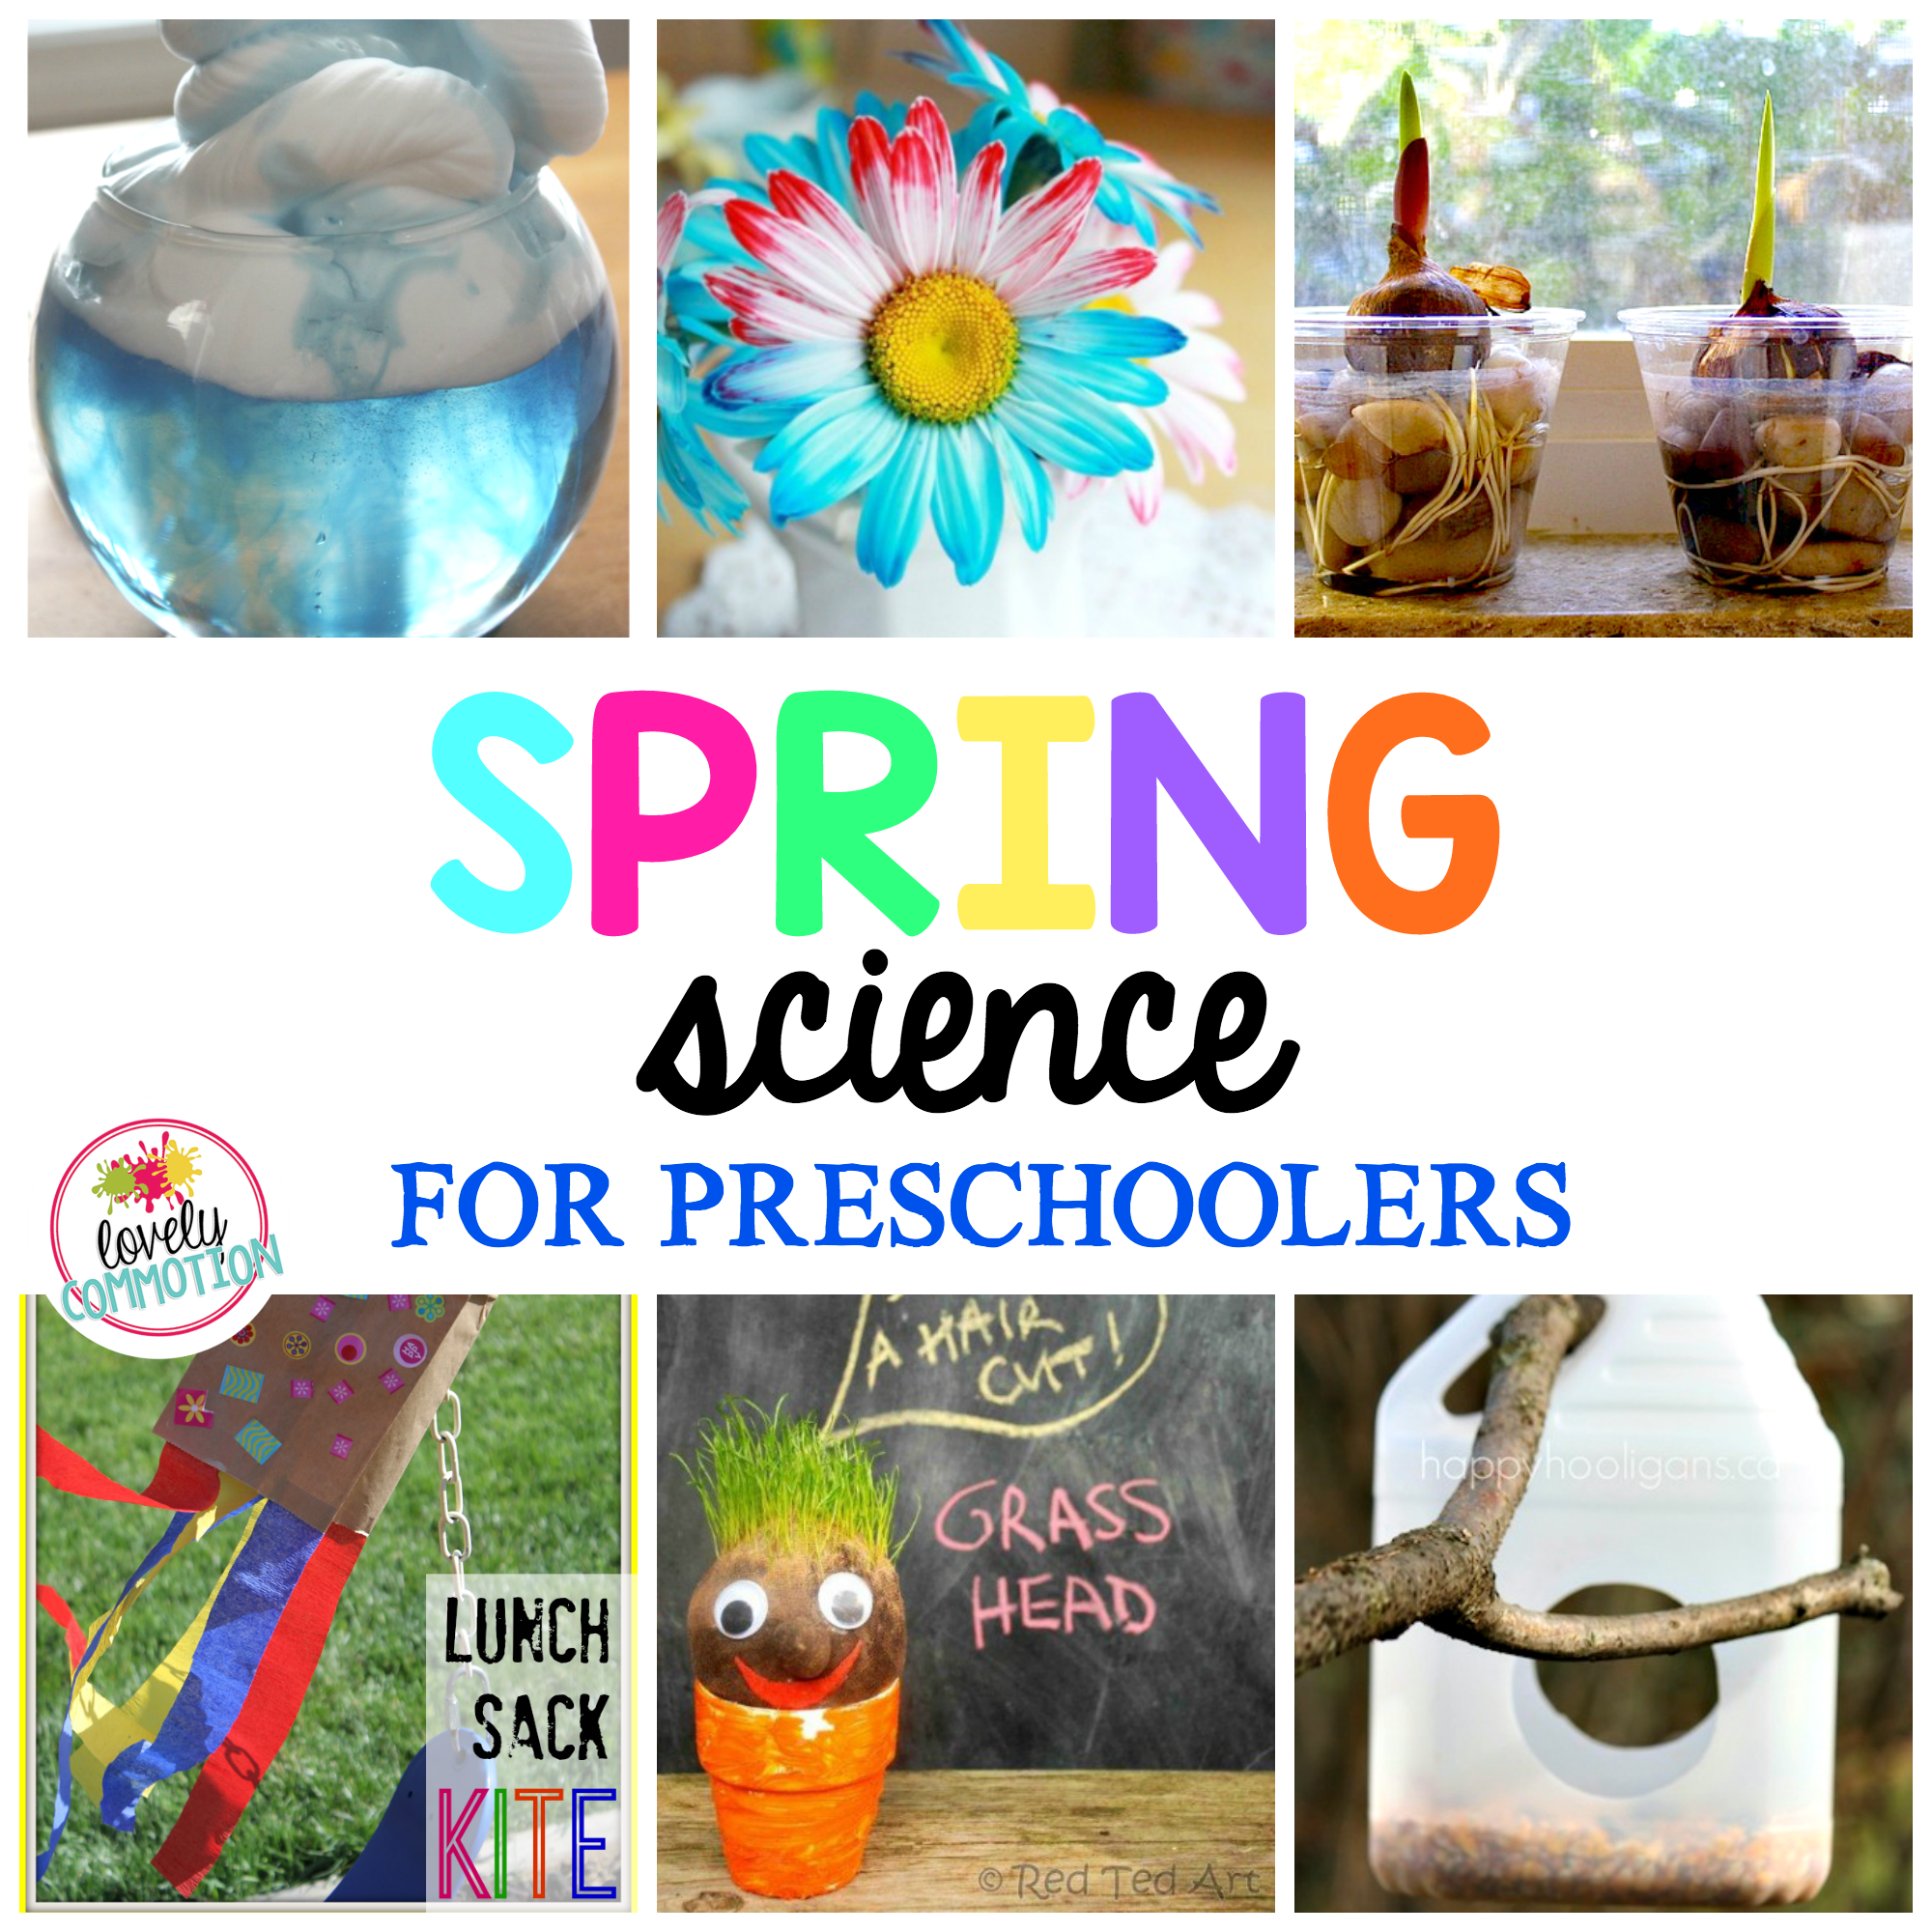 Find Some Great Spring Science Ideas And Activities For